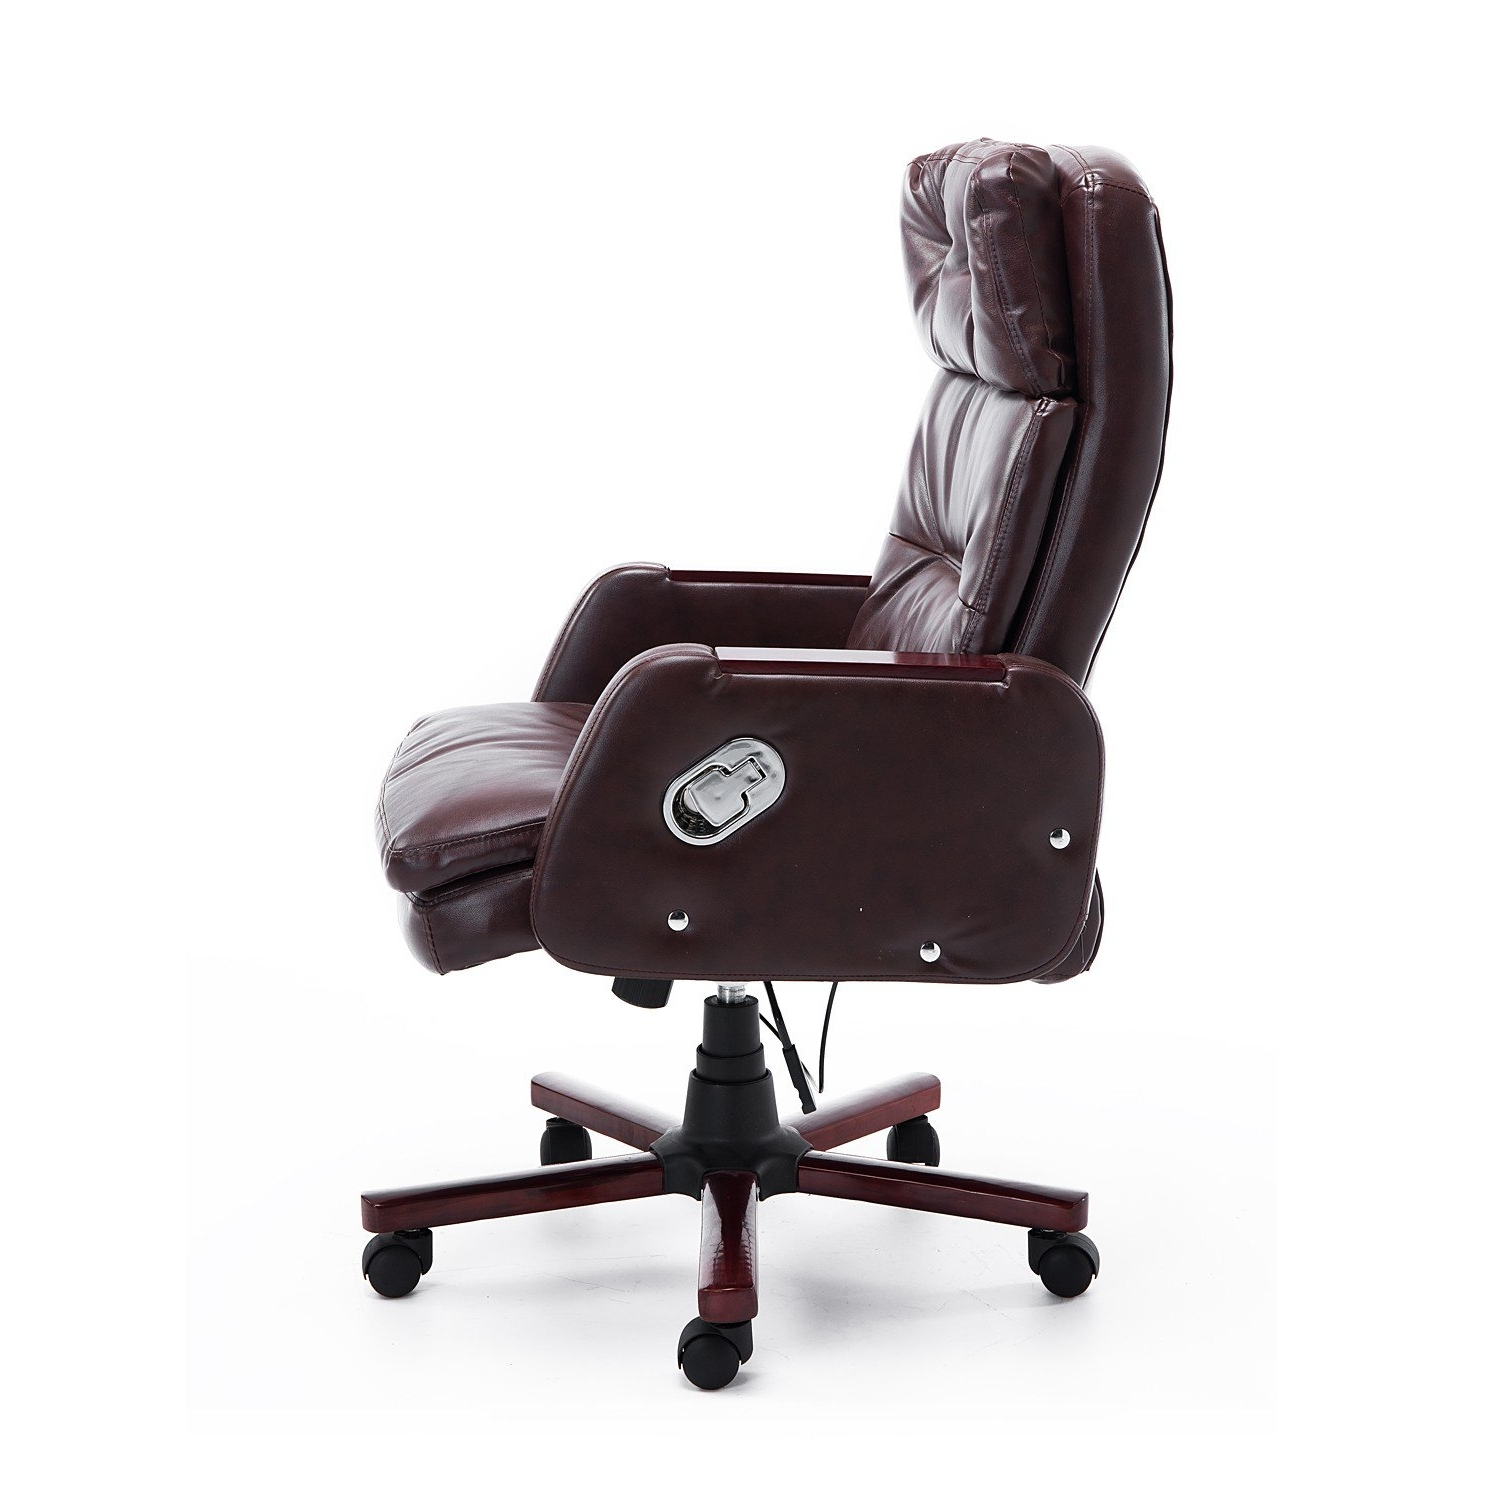 Most Recent Homcom Faux Leather Reclining Office Chair Seat With Adjustable In Executive Office Chairs With Back Support (View 17 of 20)